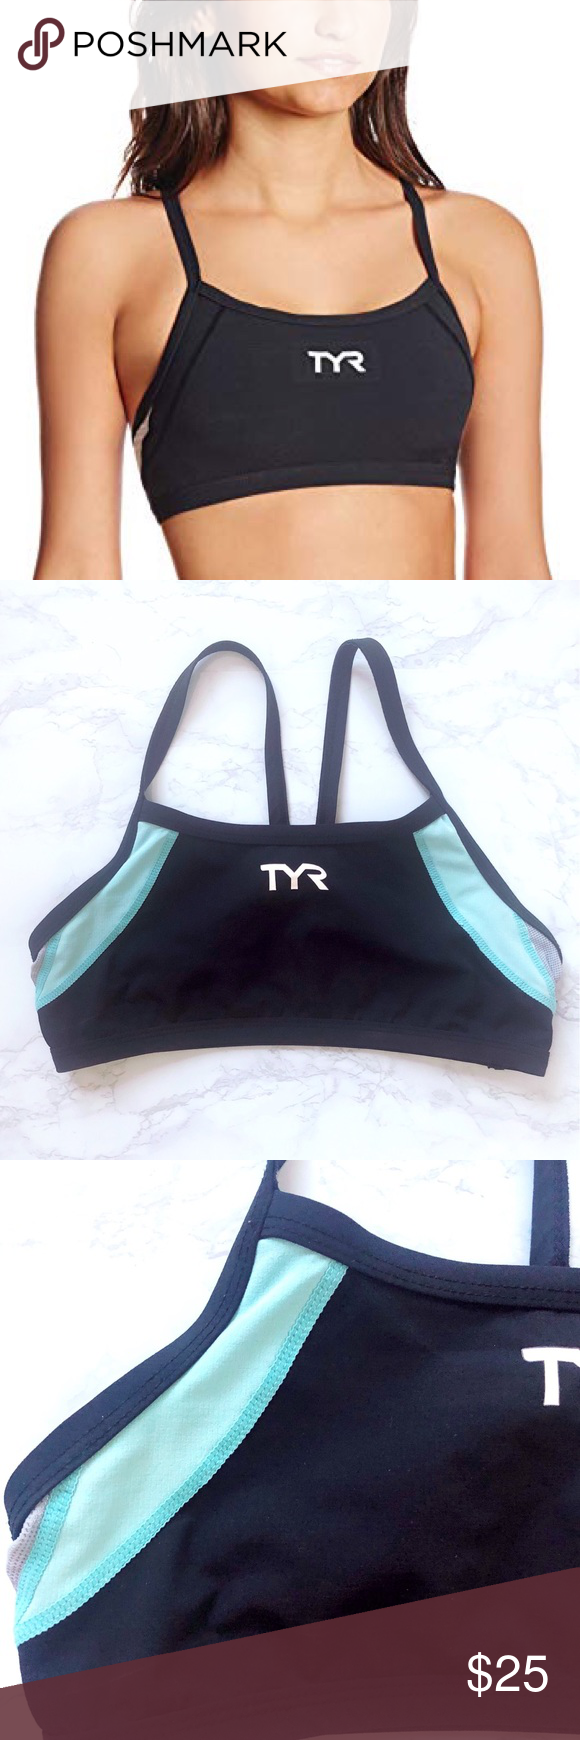 7ed55291d5325 TYR Competitor Thin Strap Tri Sports Bra S  EUC  TYR Competitor Thin Strap  Tri